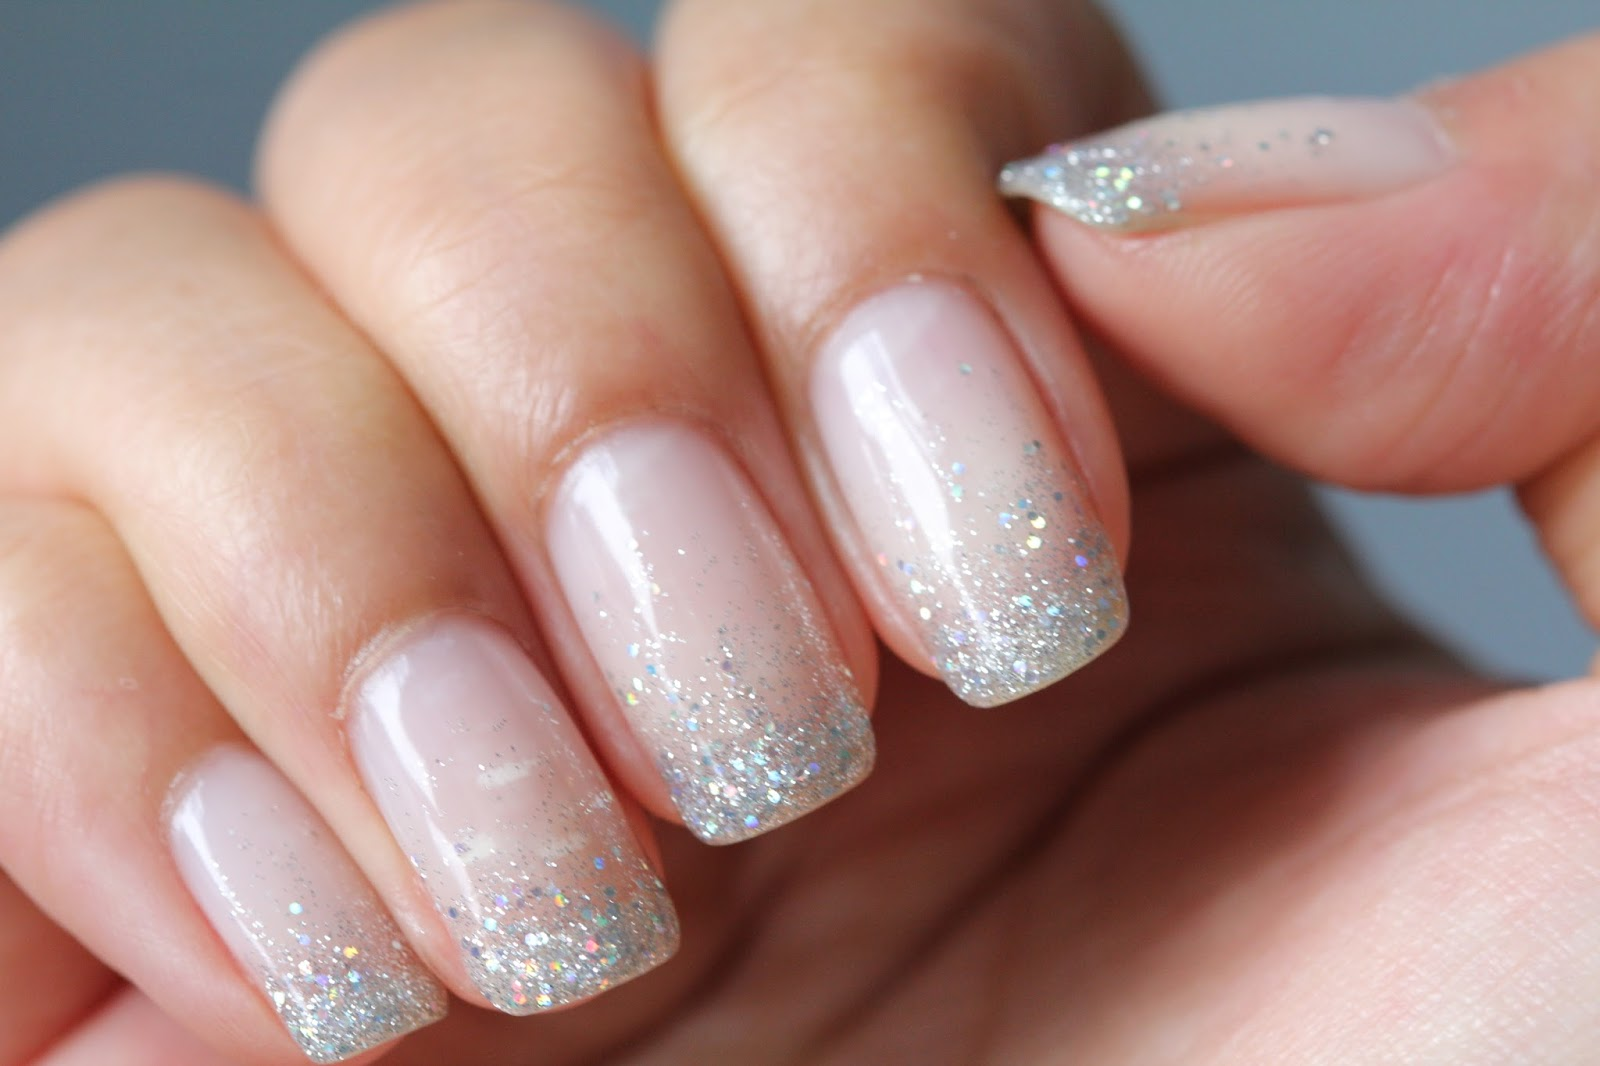 dsk steph cindy 39 s nails glitter waterfall shellac nails. Black Bedroom Furniture Sets. Home Design Ideas